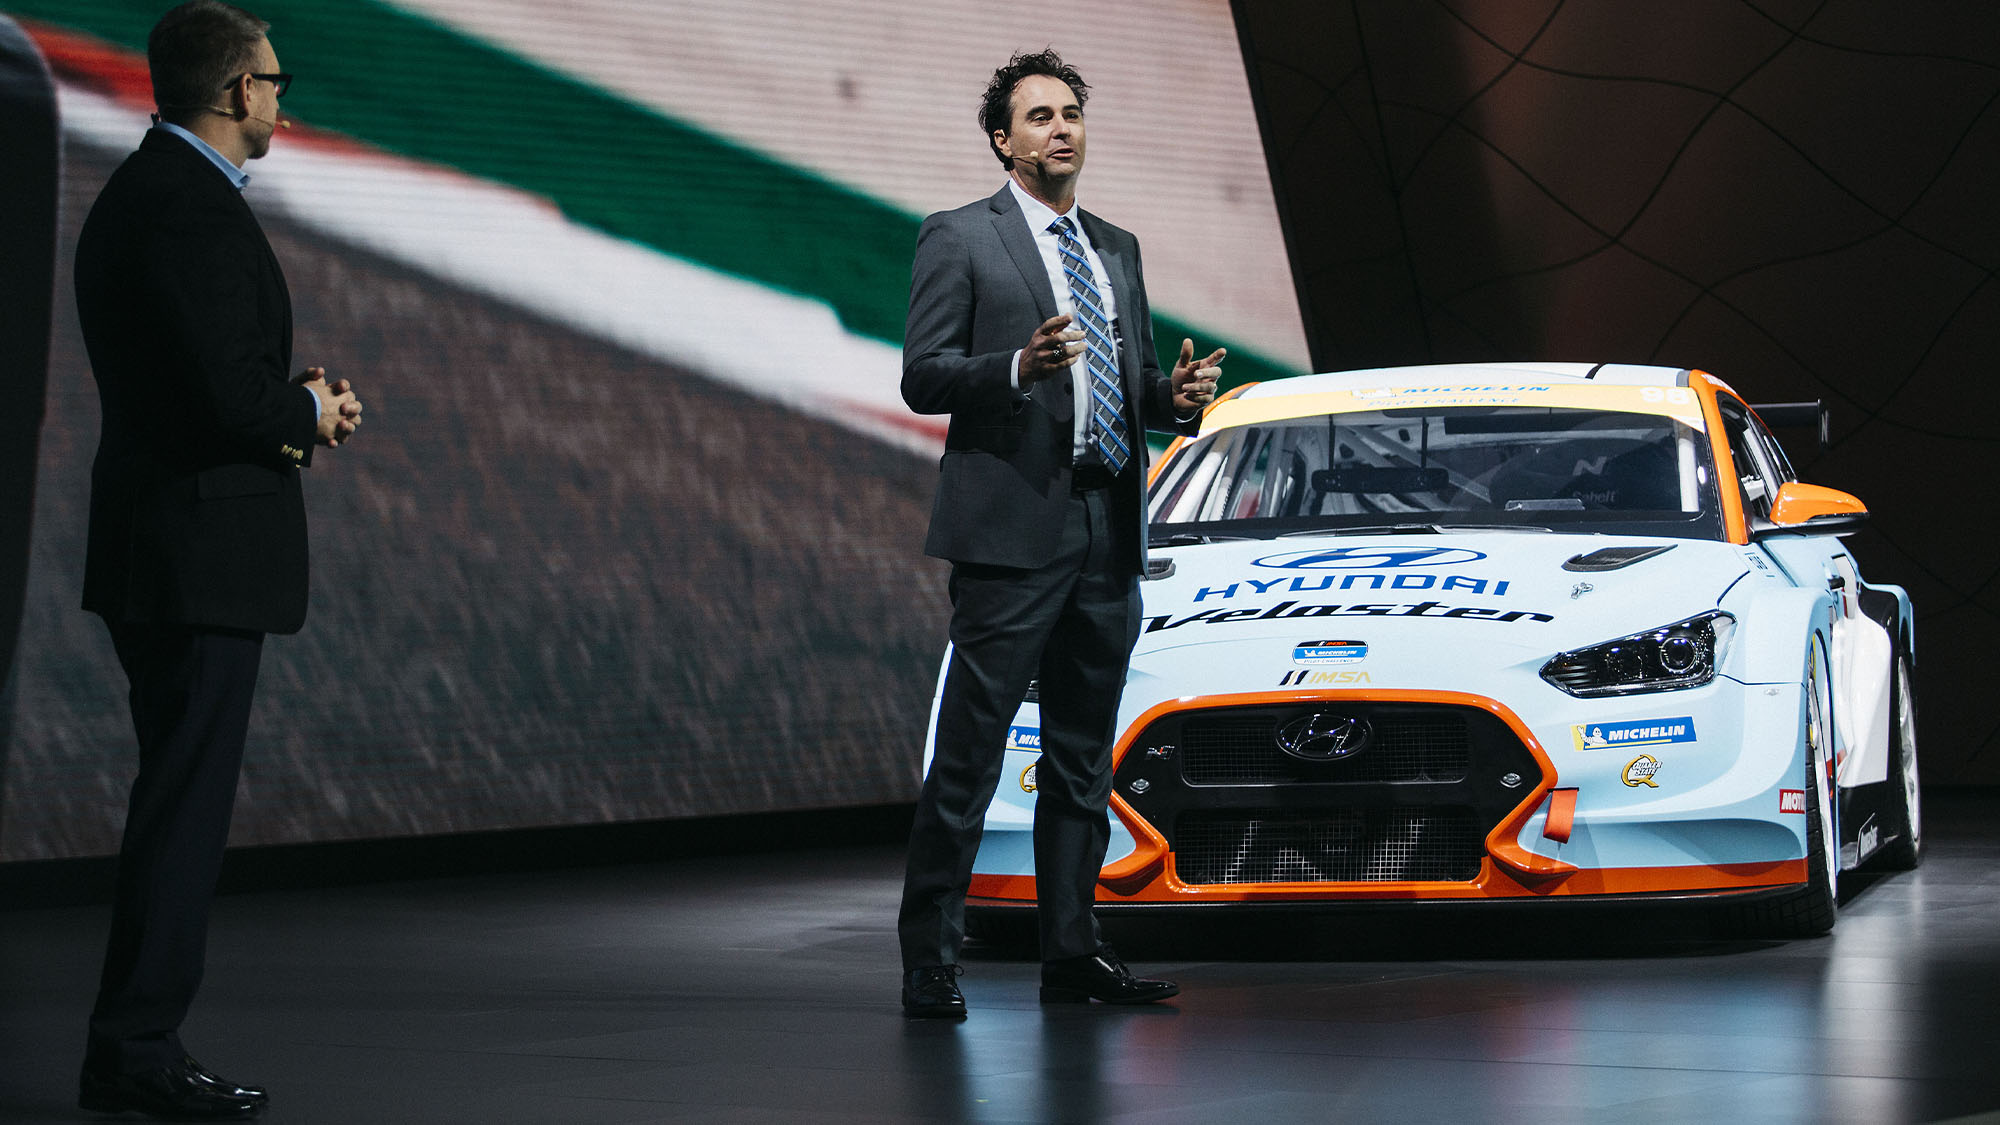 Bryan Herta, president and co-owner of Bryan Herta Autosport, speaks while standing next to the Hyundai Motor Co. Veloster N TCR race car during the 2019 North American International Auto Show (NAIAS) in Detroit, Michigan, U.S., on Monday, Jan. 14, 2019. With the largest concentration of top automotive and technology executives, designers, engineers and thought leaders, the NAIAS serves as the global stage for companies to debut brand-defining vehicles and industry-shaping announcements. Photographer: Sean Proctor/Bloomberg via Getty Images